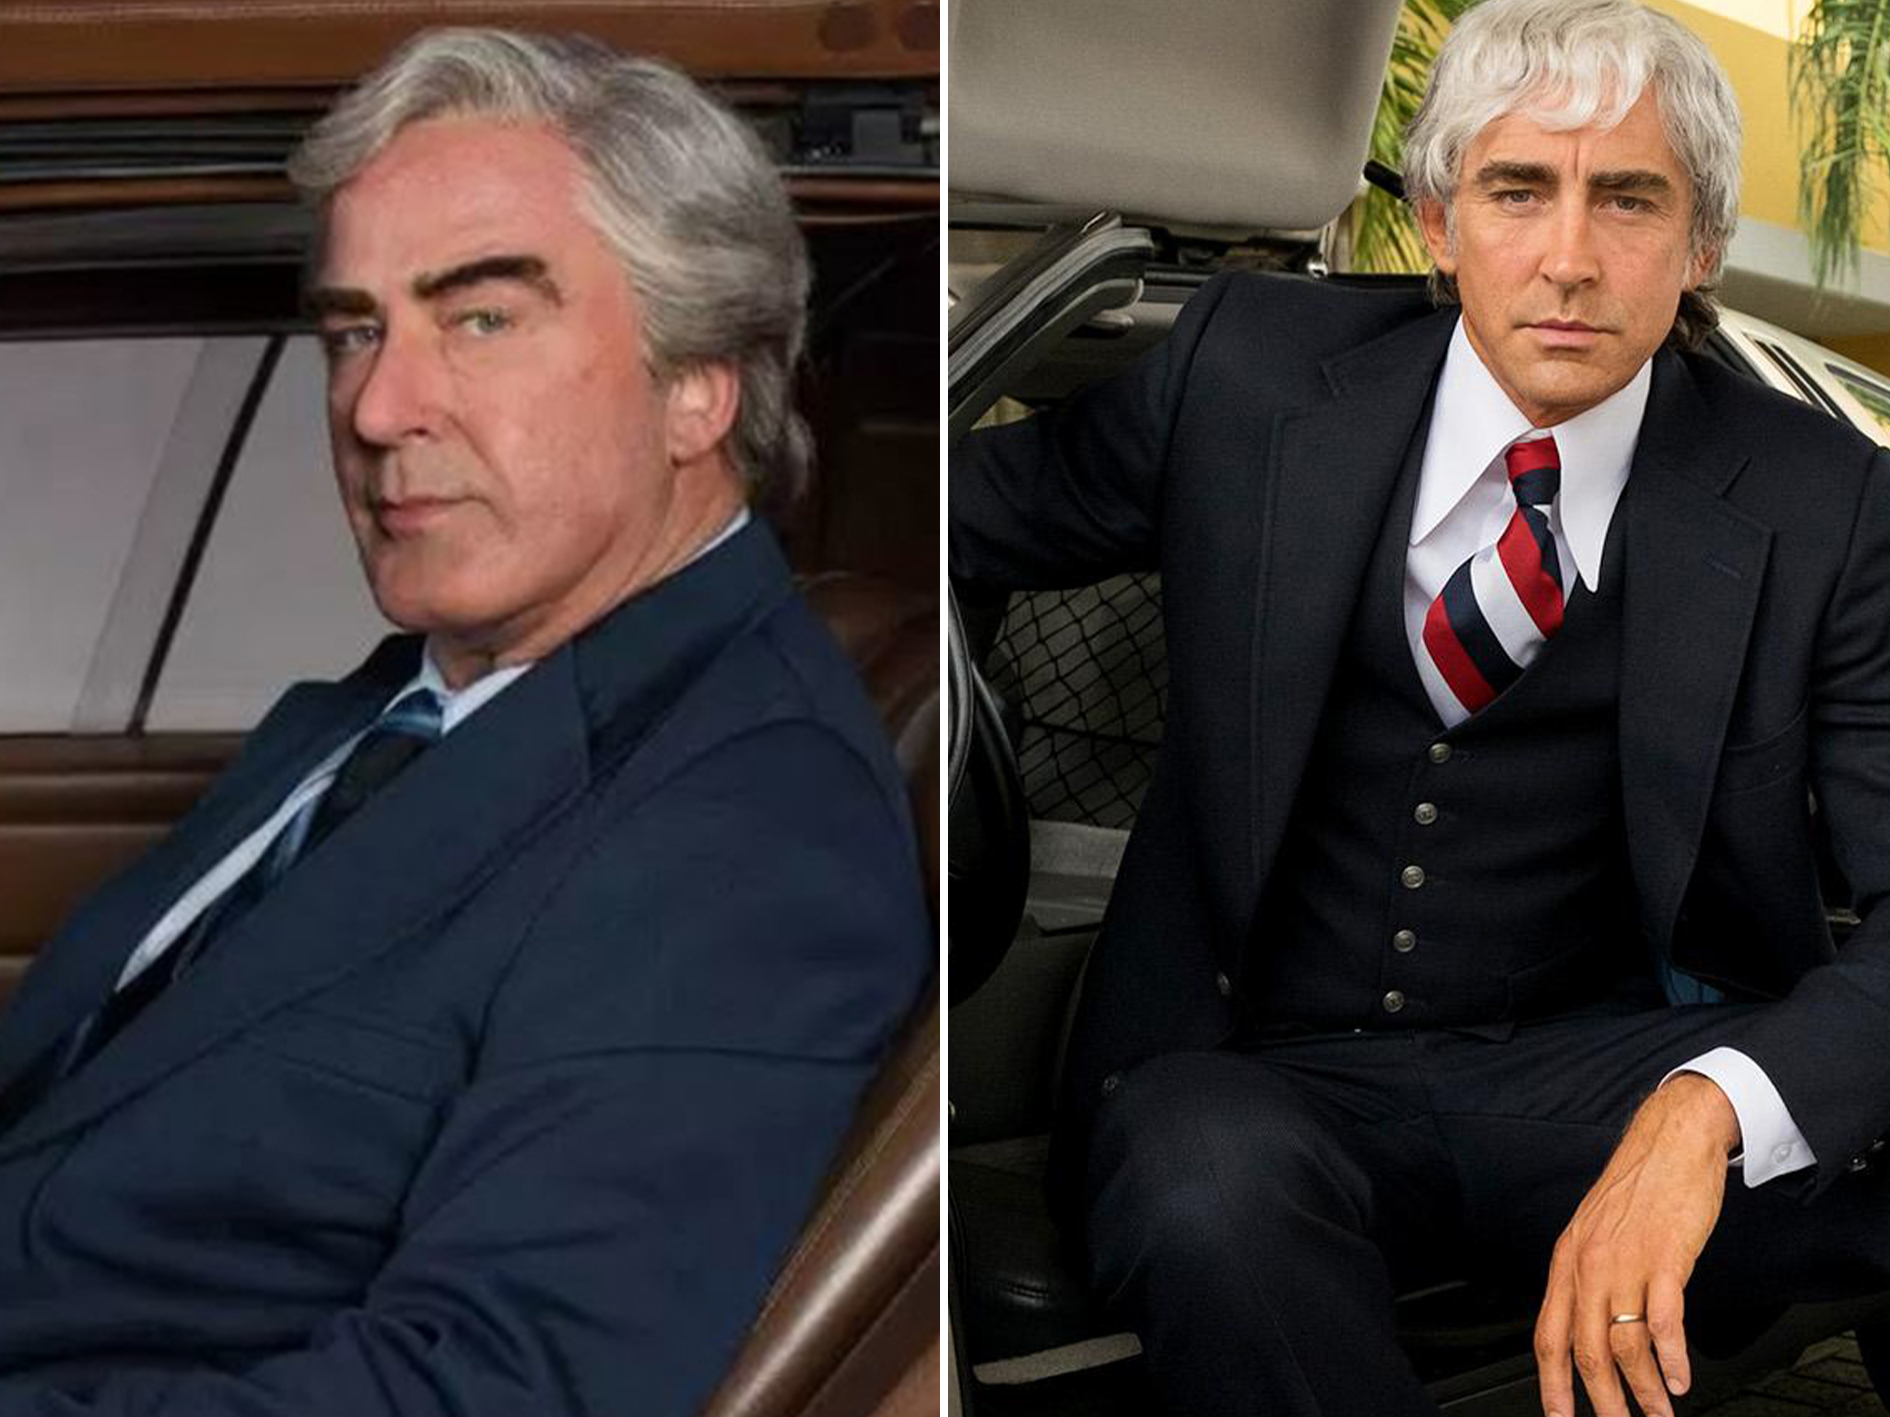 Alec Baldwin Lee Pace John DeLorean DeLorean: The Strange Story Behind The Iconic 80s Sports Car And Its Creator